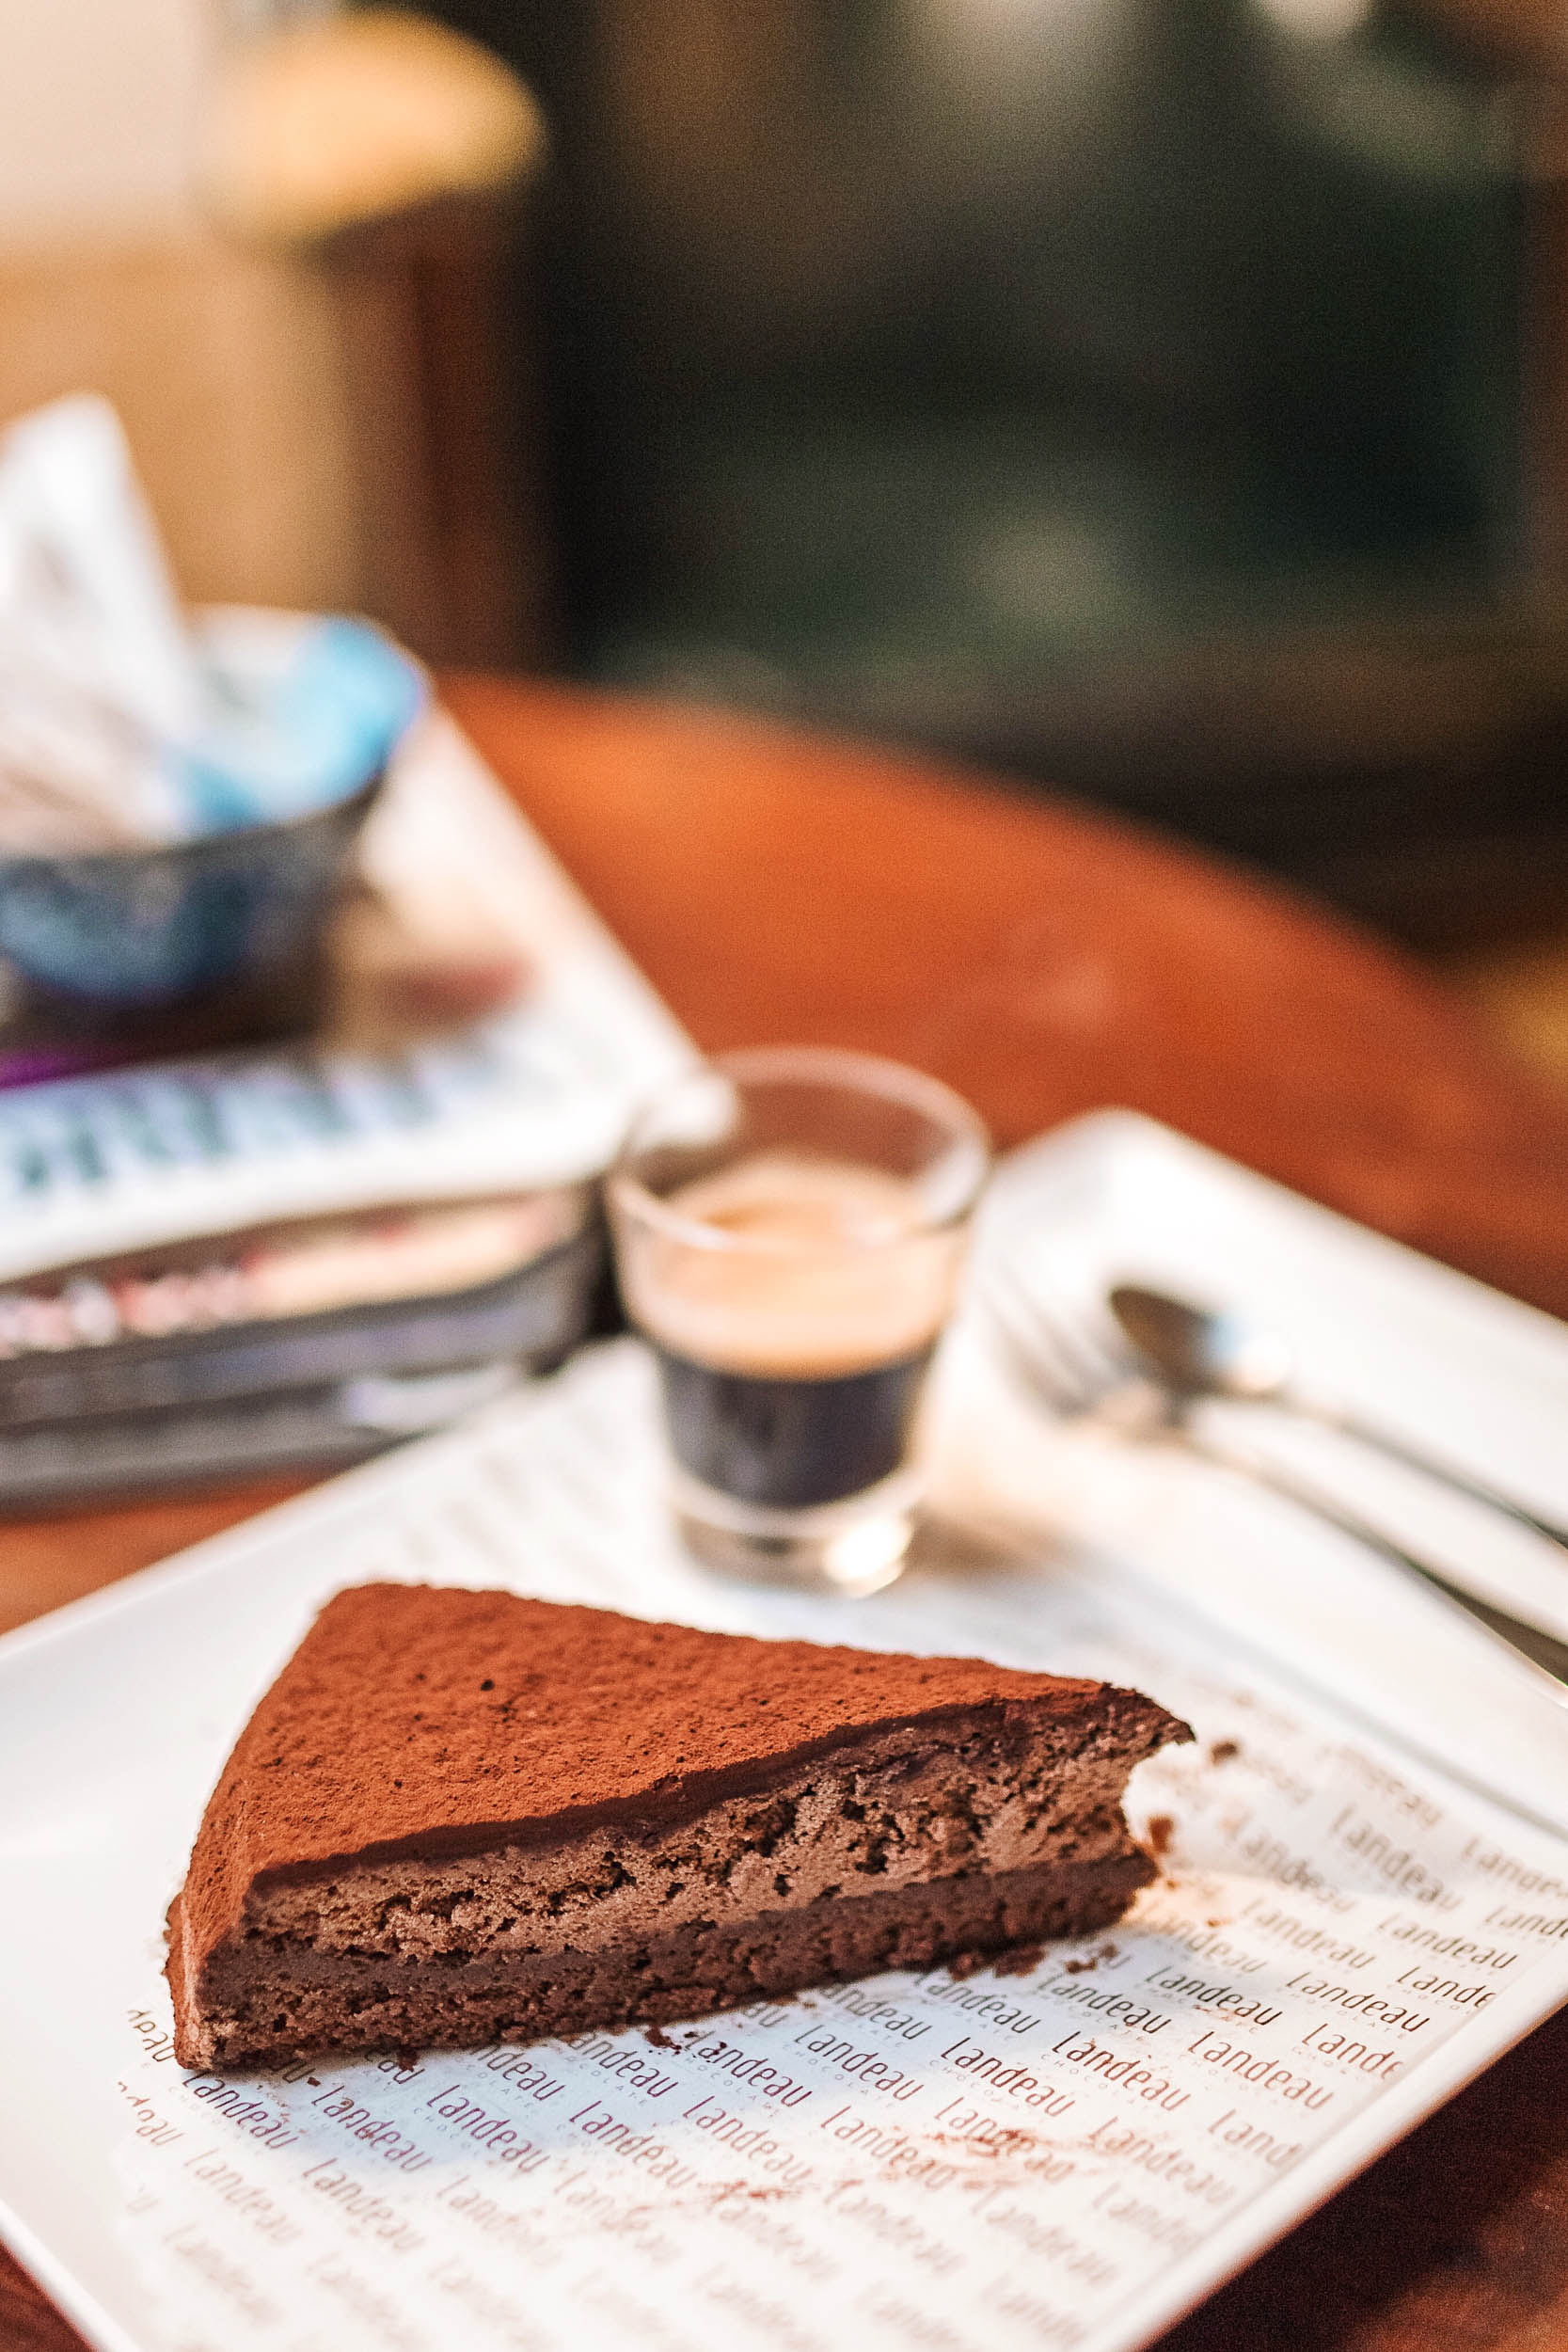 Landeau Chocolate in Lisbon, Portugal offers two things and two things only - chocolate cake and coffee. Great for an afternoon treat!